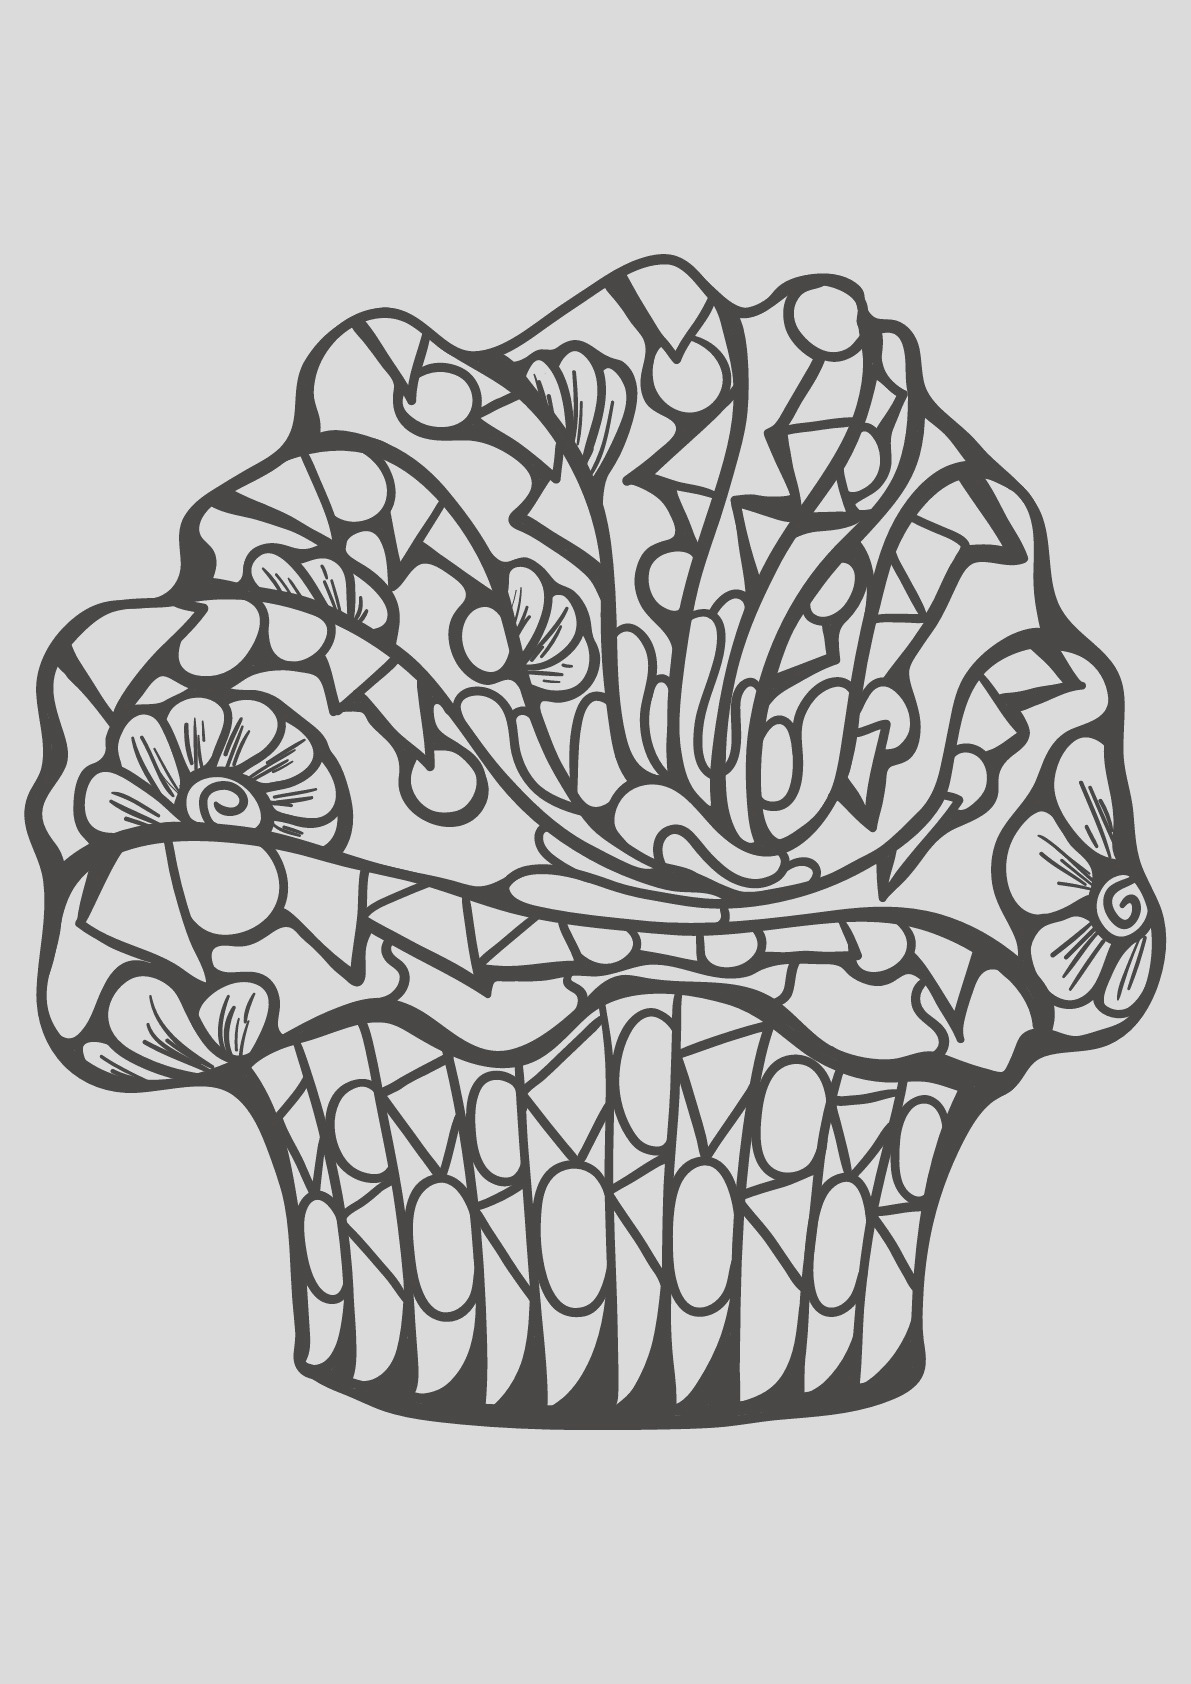 image=cup cakes coloring free book cupcake 7 1